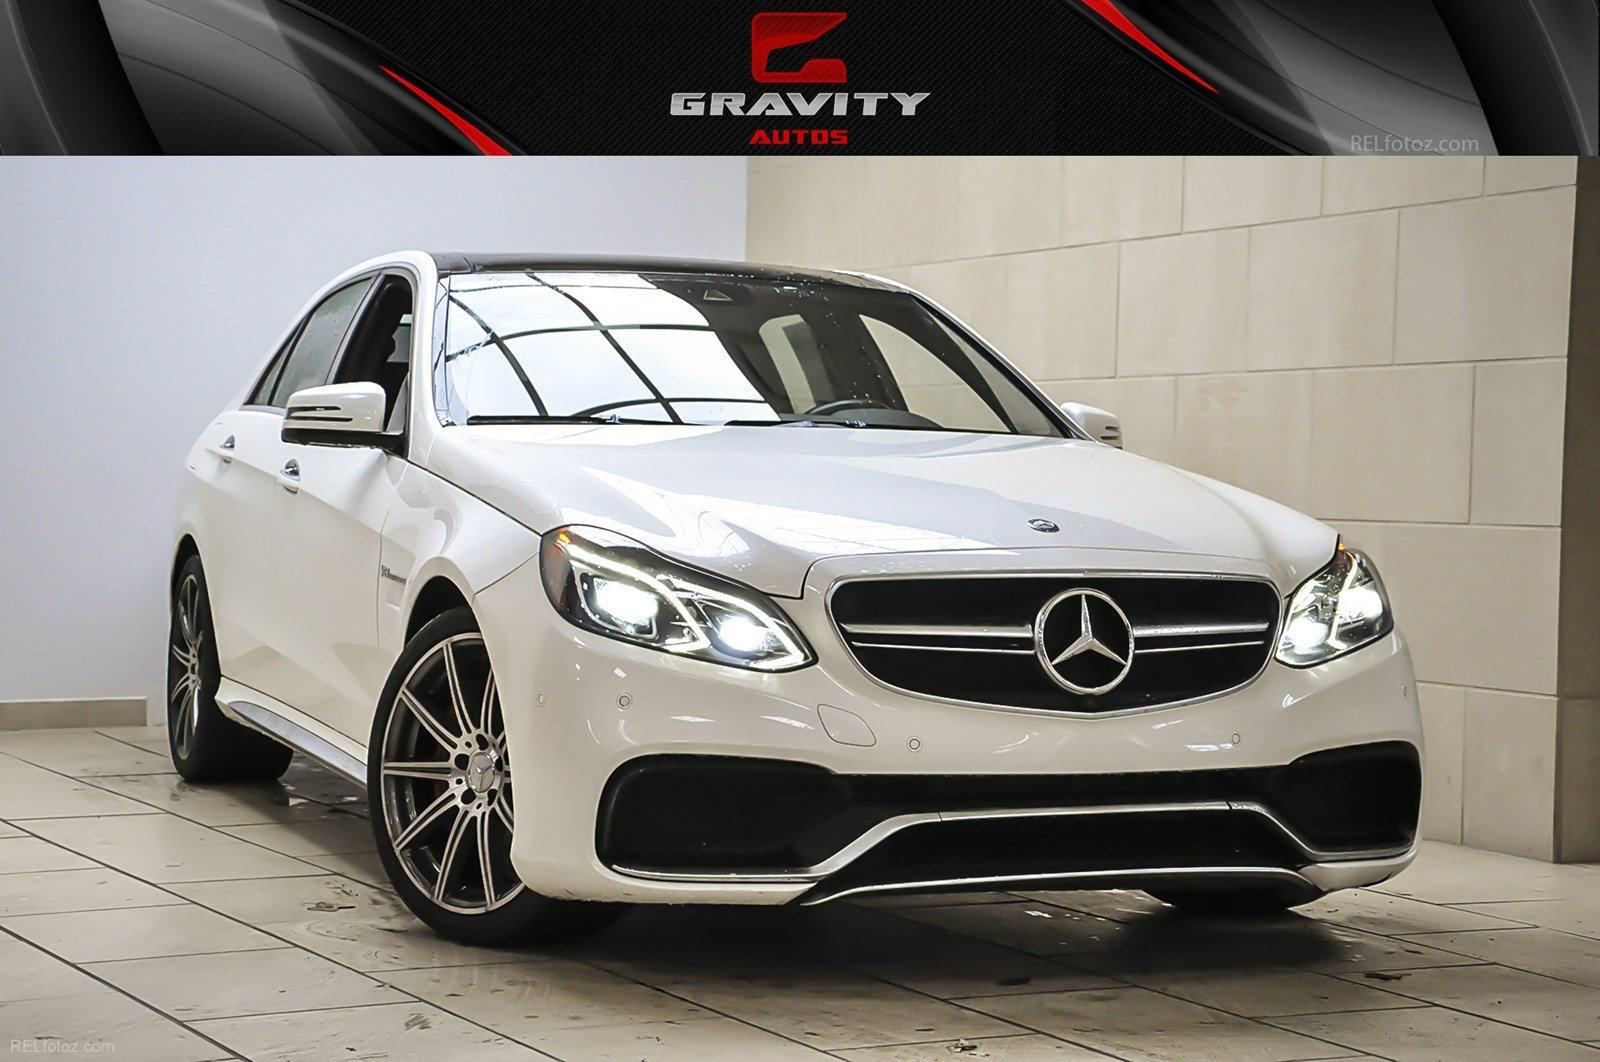 2014 Mercedes Benz E Class E 63 Amg S Model Stock 896038 For Sale